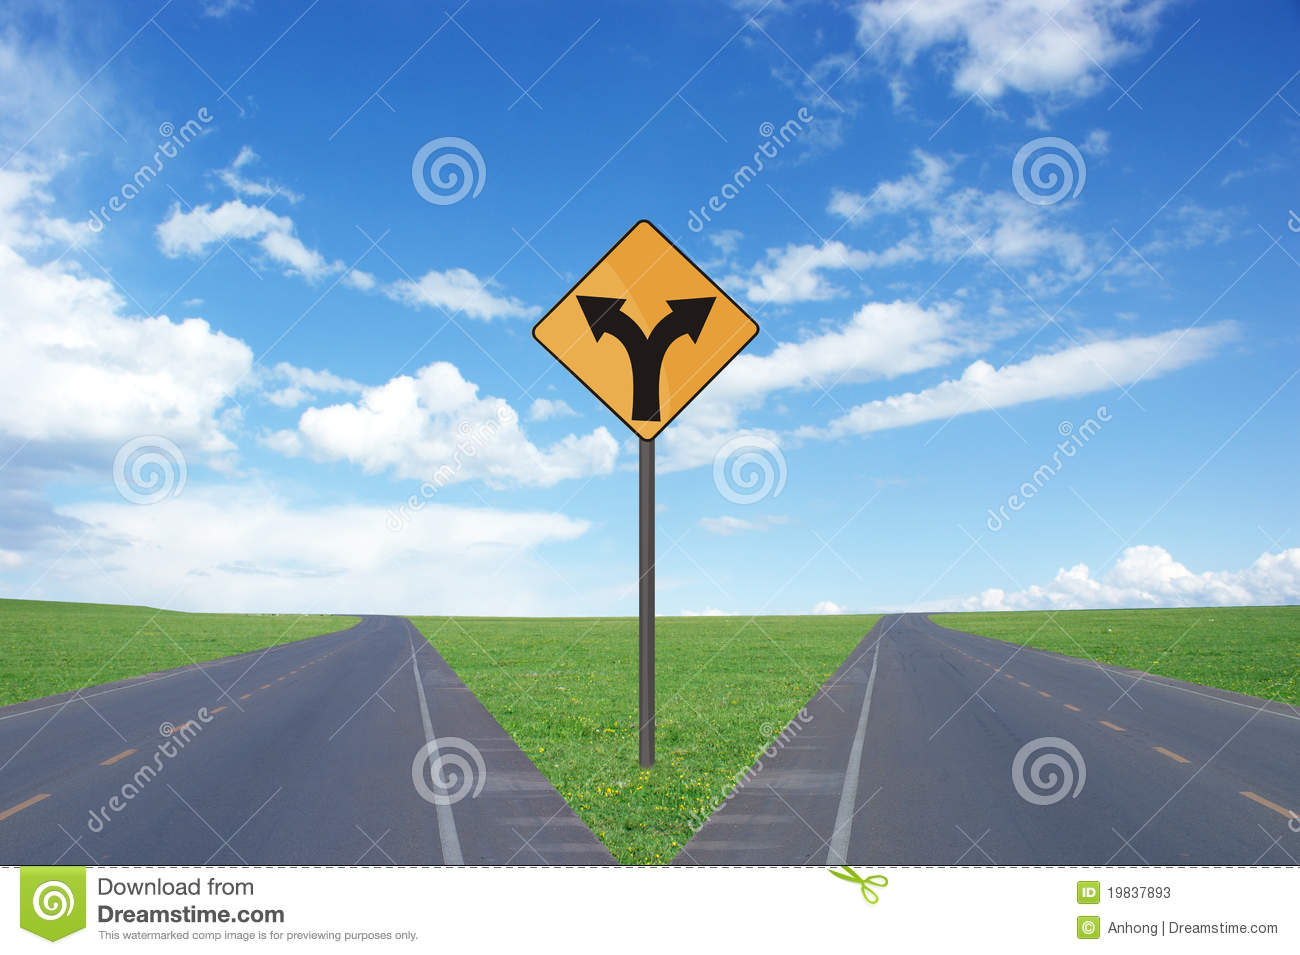 Road intersection and signs